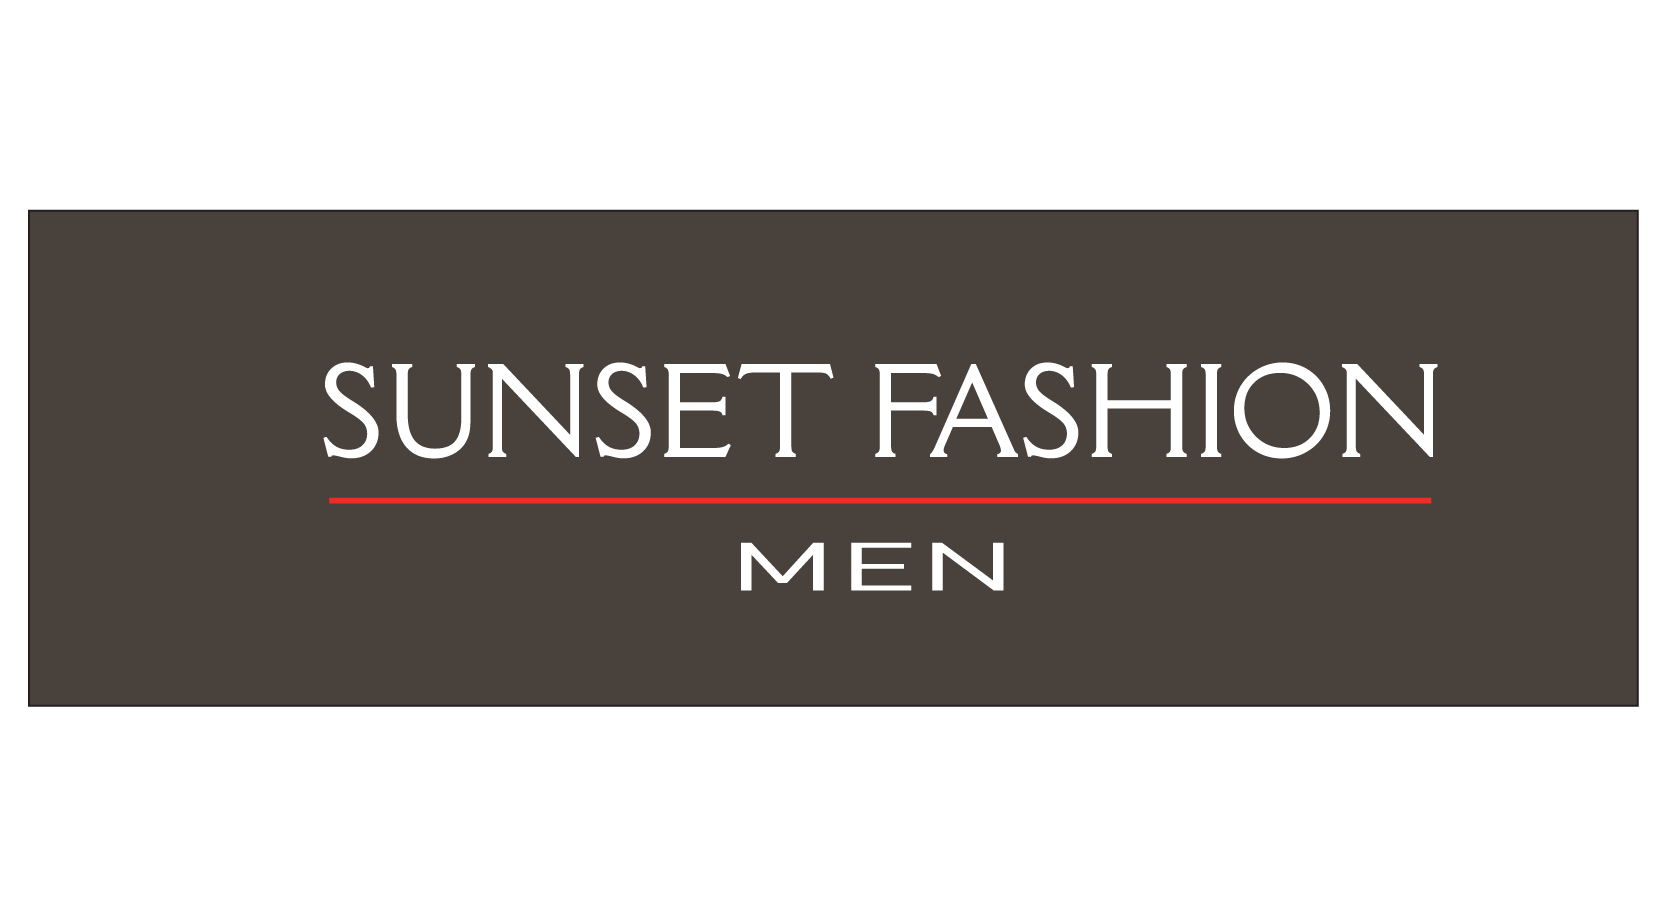 Sunset Fashion men